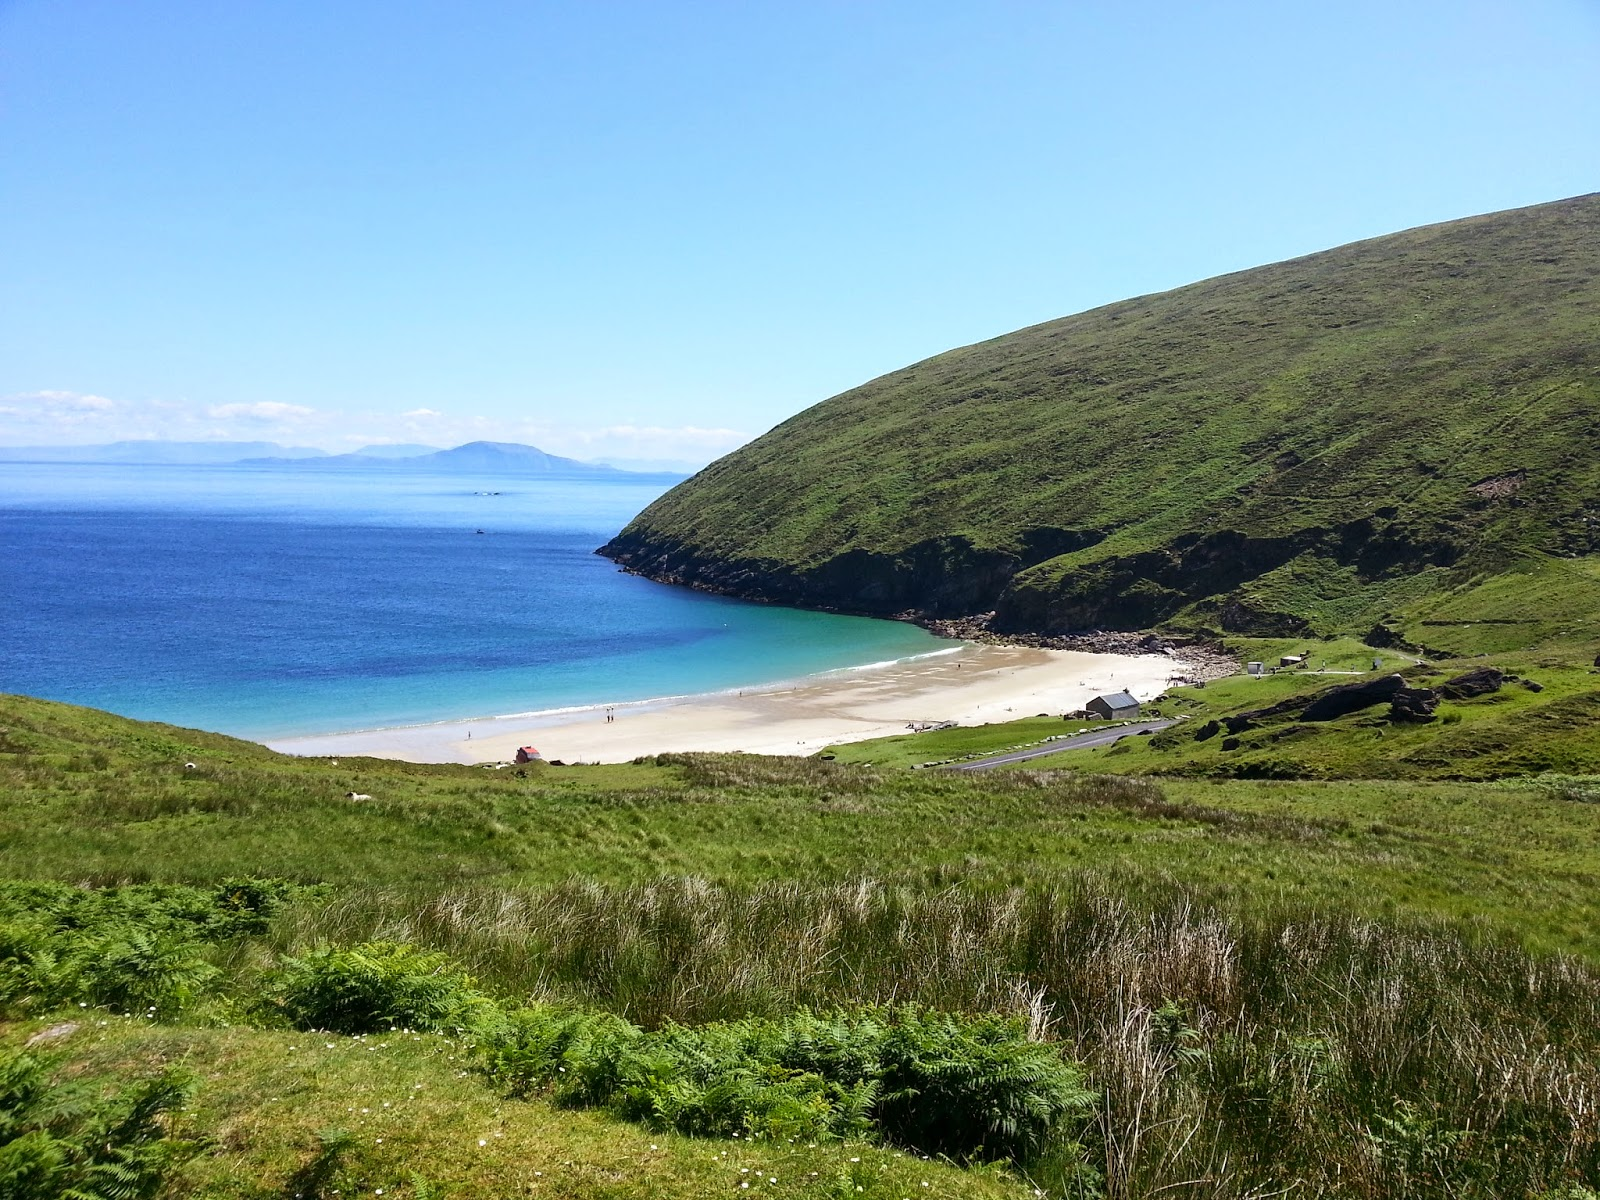 Golden sands and aquamarine waters of Keem Bay, Achill Island